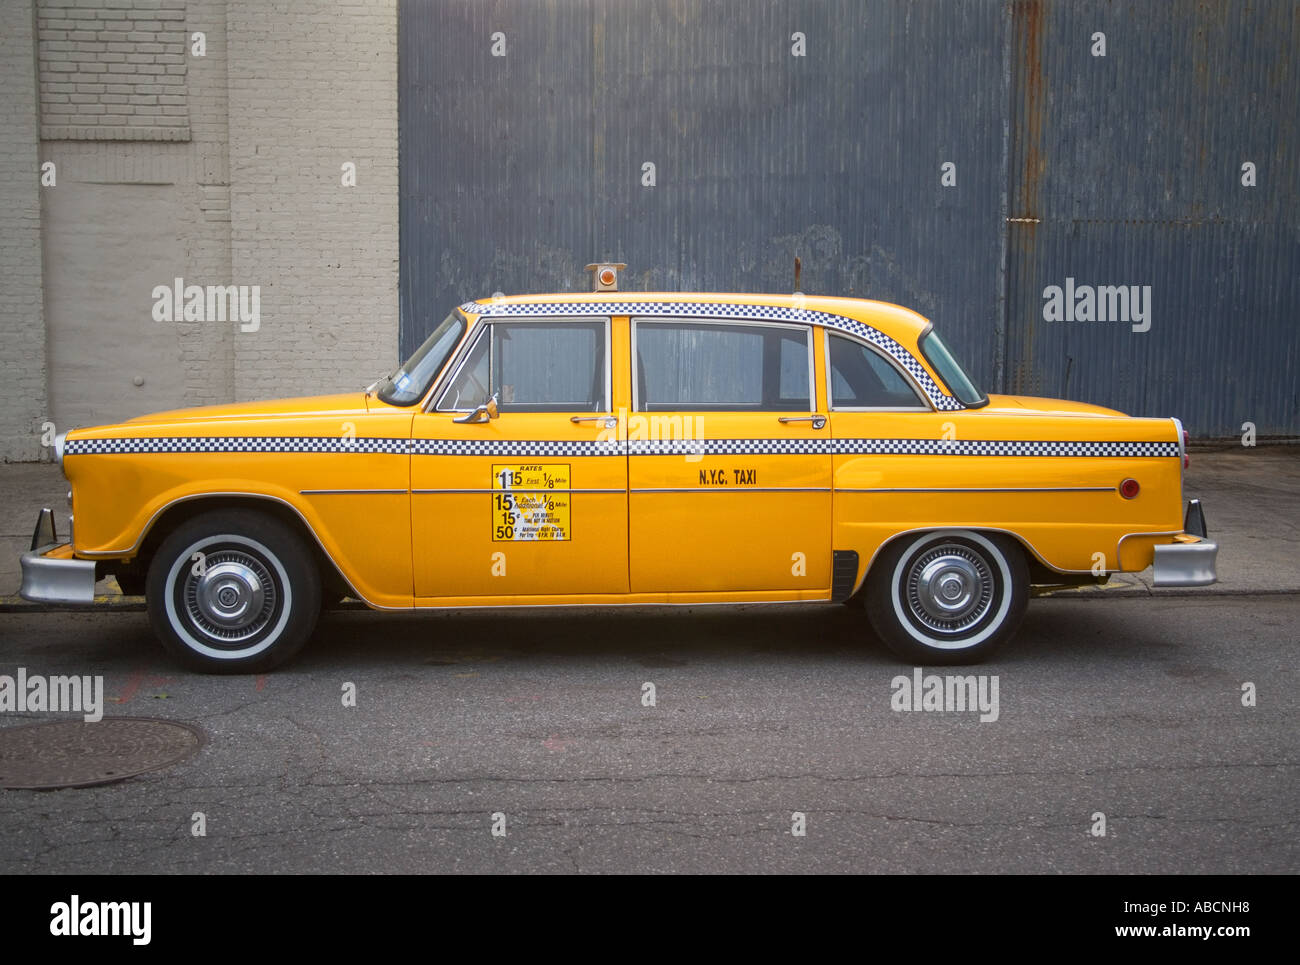 Parked yellow taxi cab new york - Stock Image